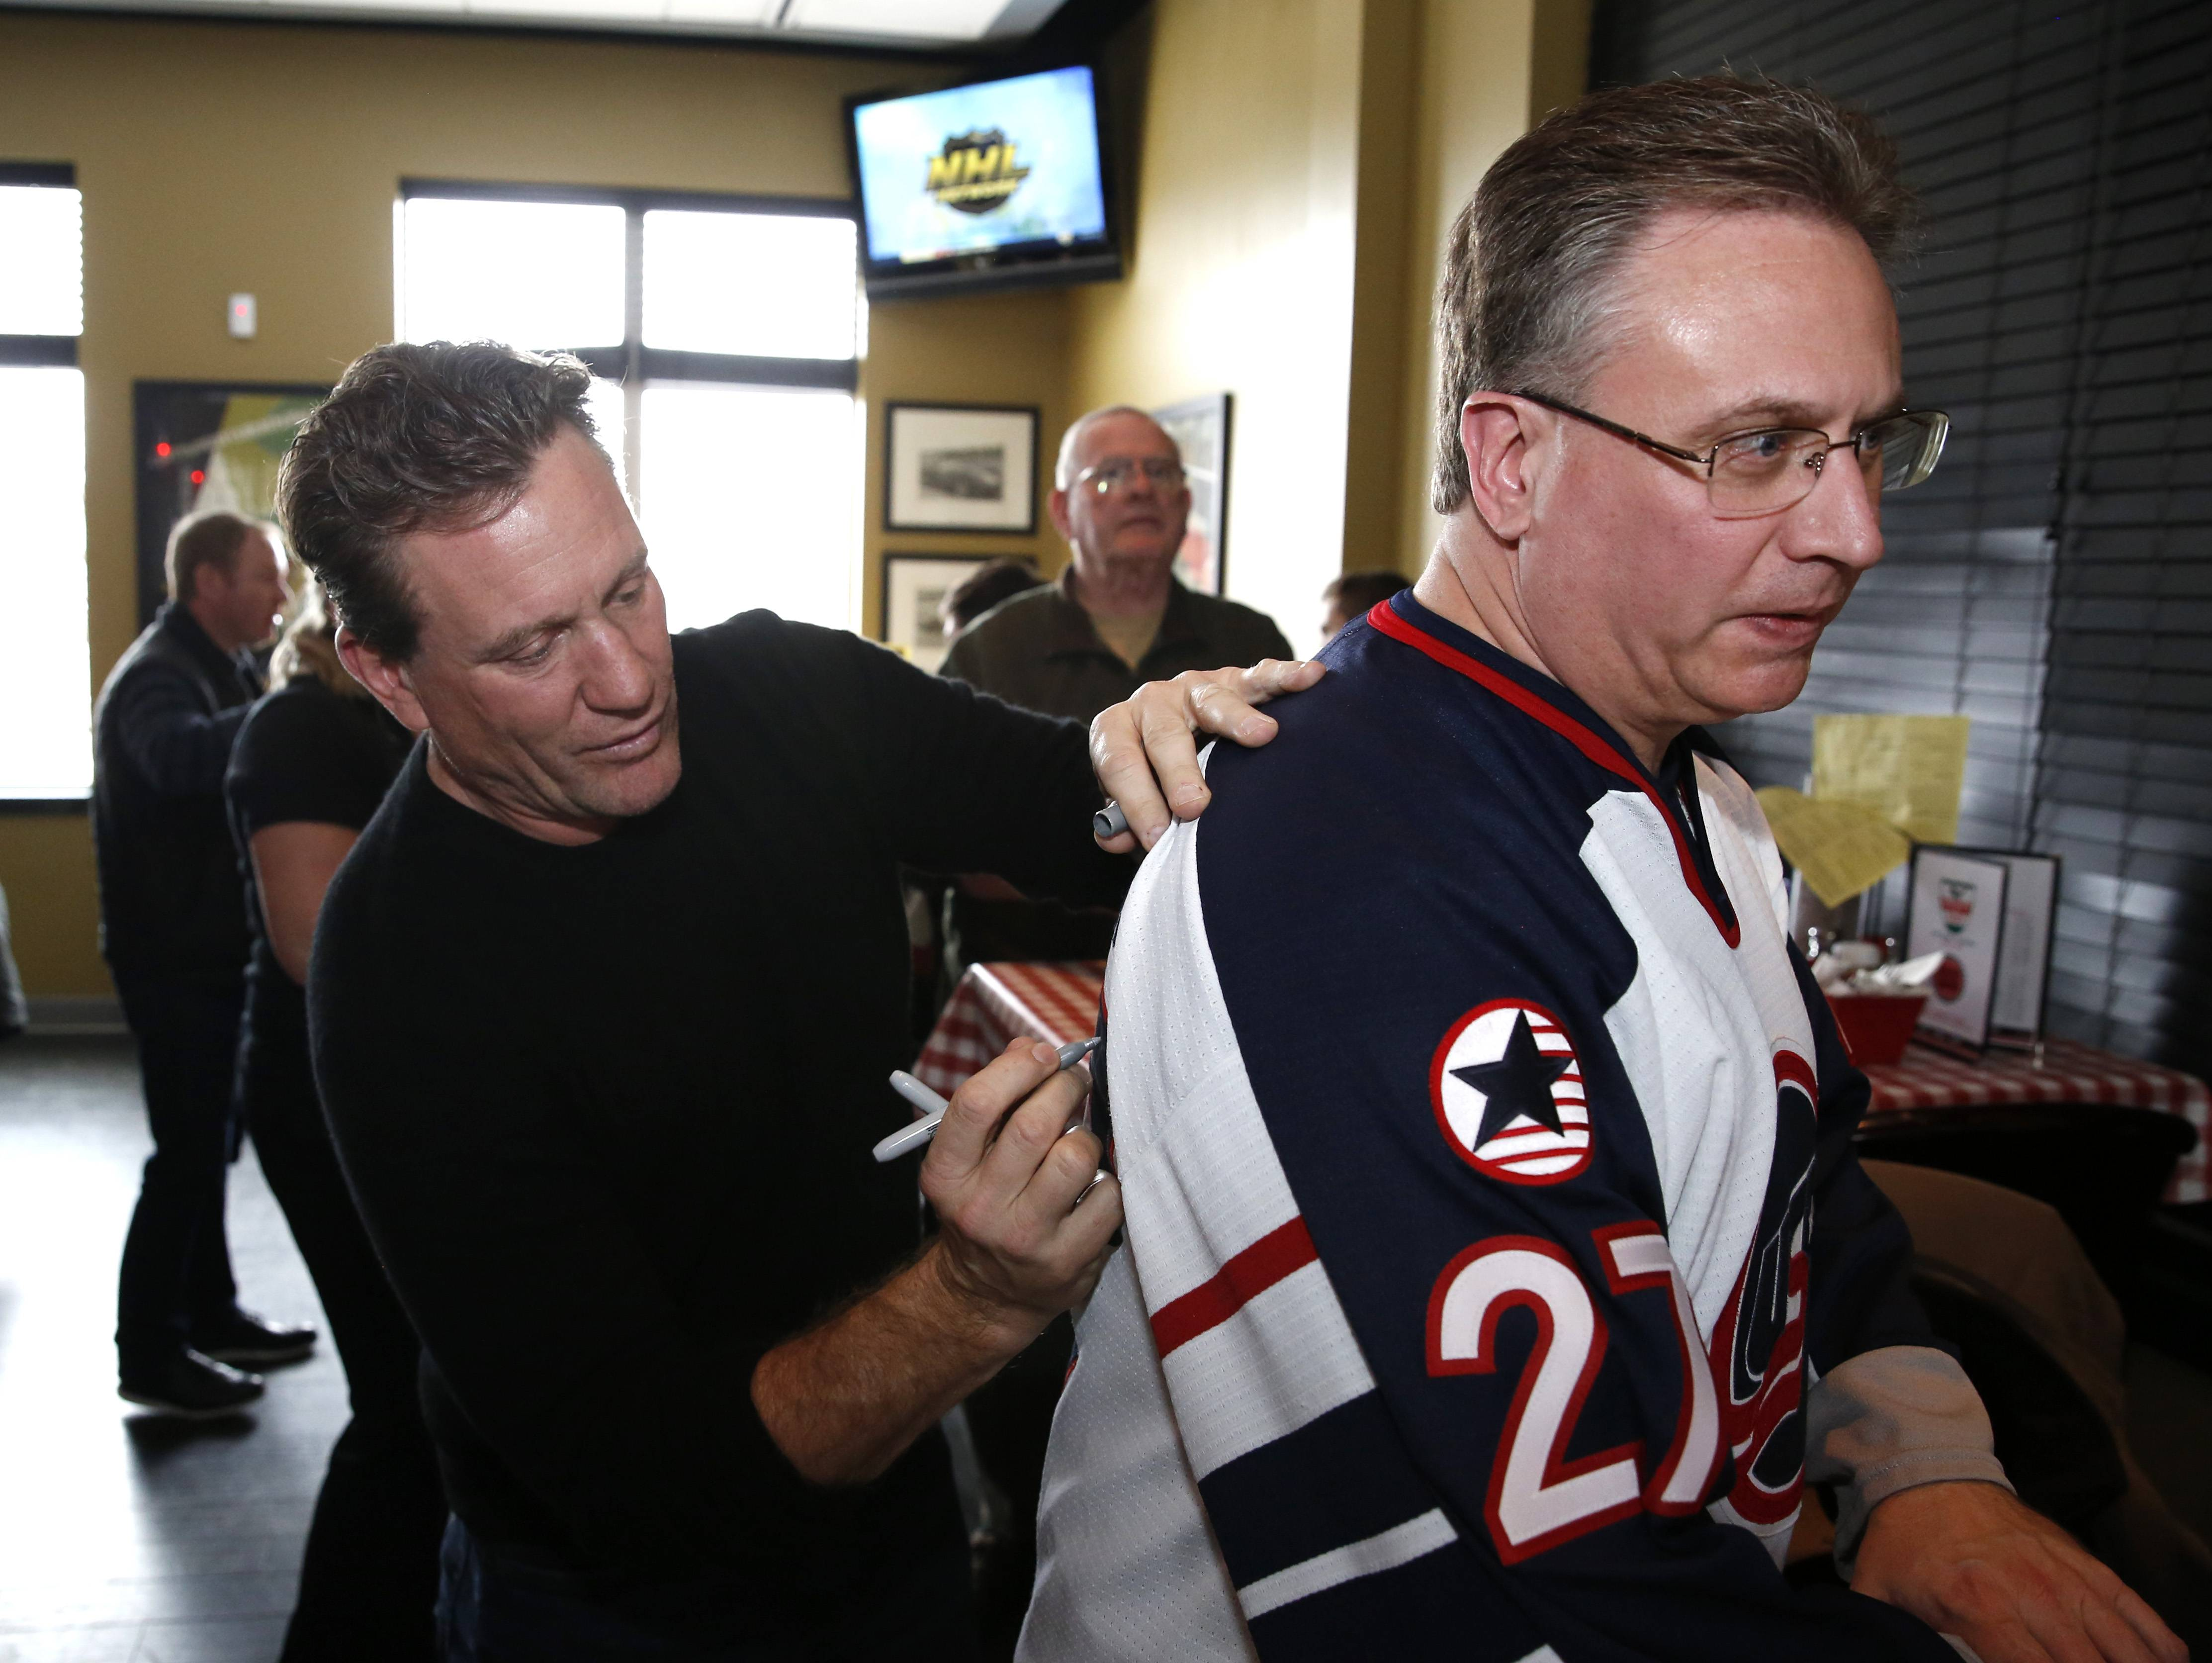 Former Chicago Blackhawks player Jeremy Roenick autographs the back of Naperville resident Chris Gist's Roenick jersey Wednesday at Aurelio's Pizza in Naperville.